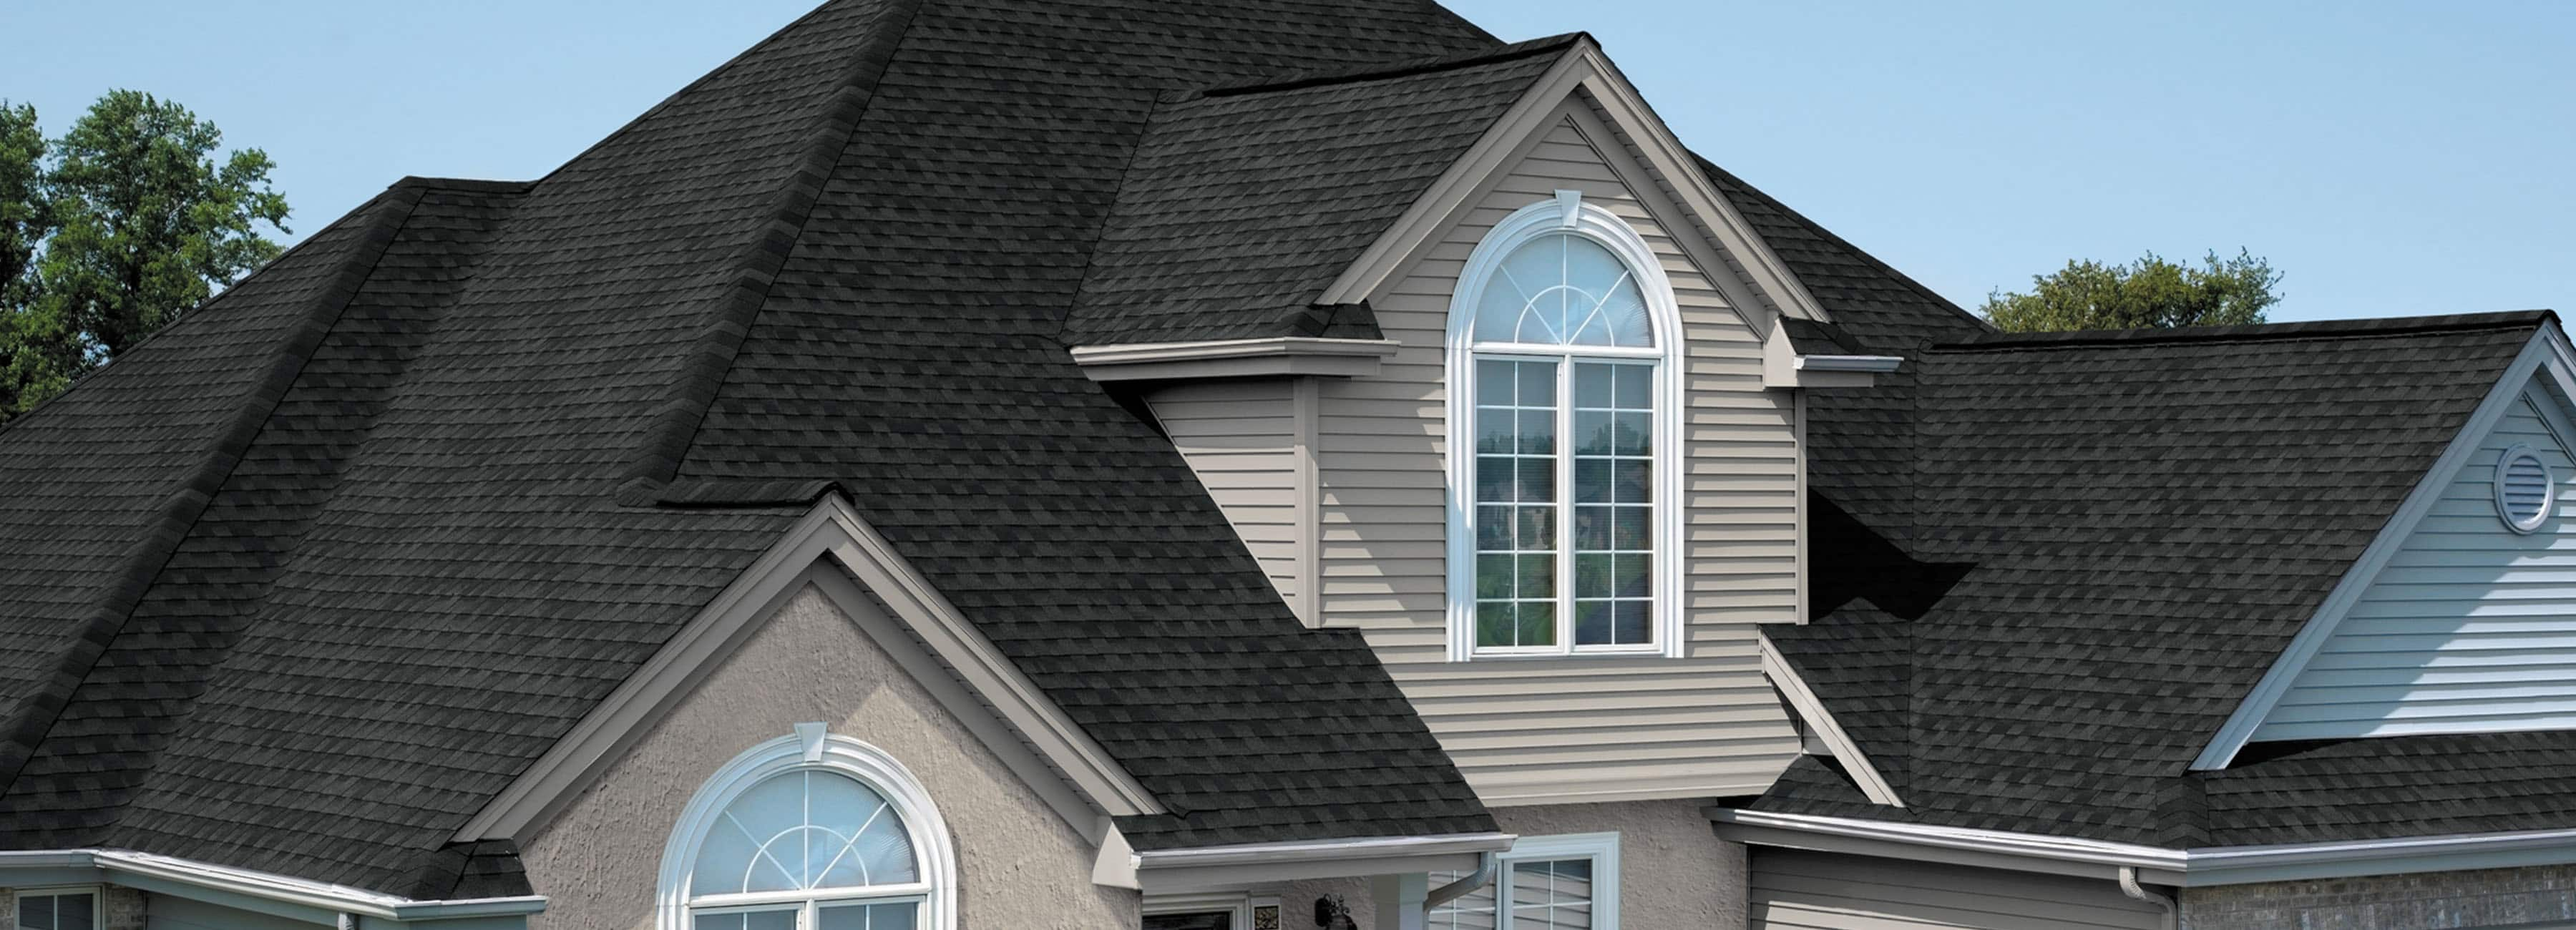 GAF – Best Rated Brand Of Roofing Shingles